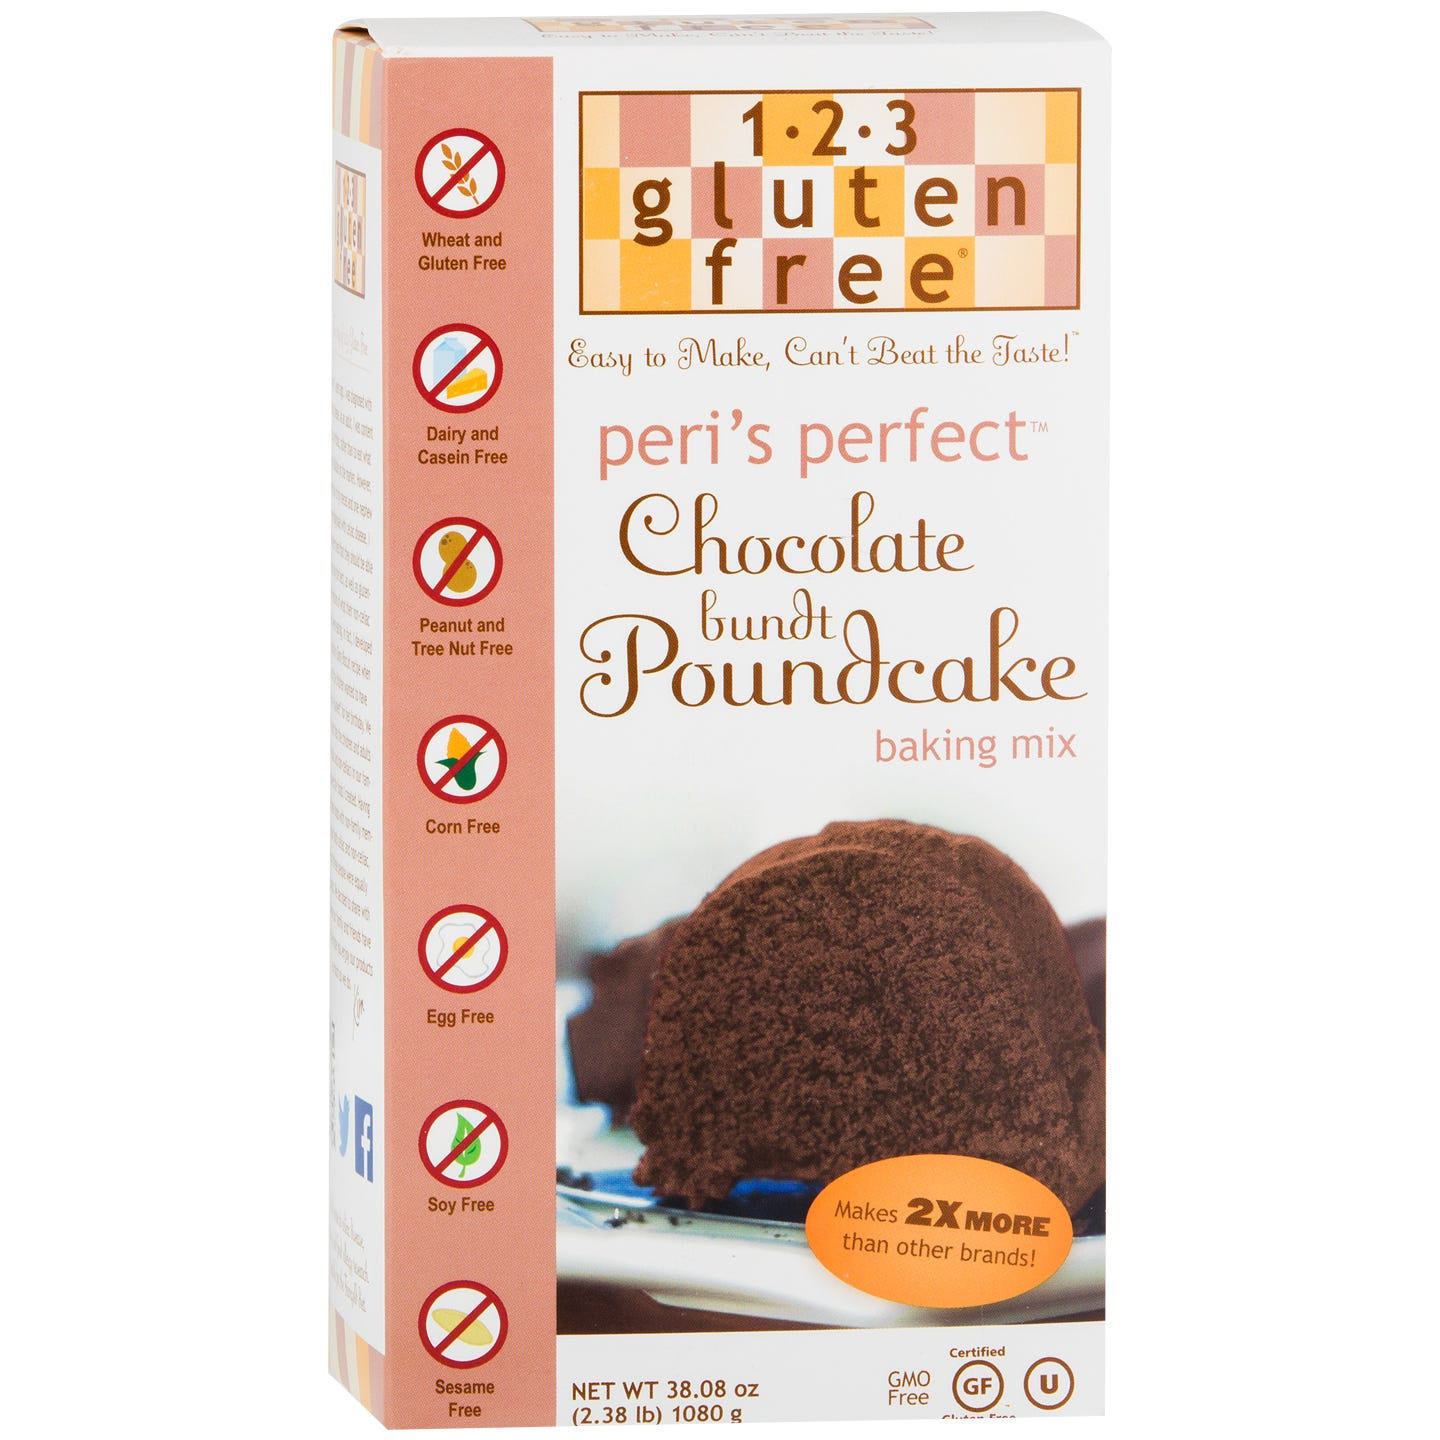 Gluten Free Bundt Poundcake Mix, Peri's Perfect Chocolate 38.08 oz - 123 Gluten Free - Rapid Diet Weight Loss Products Shop